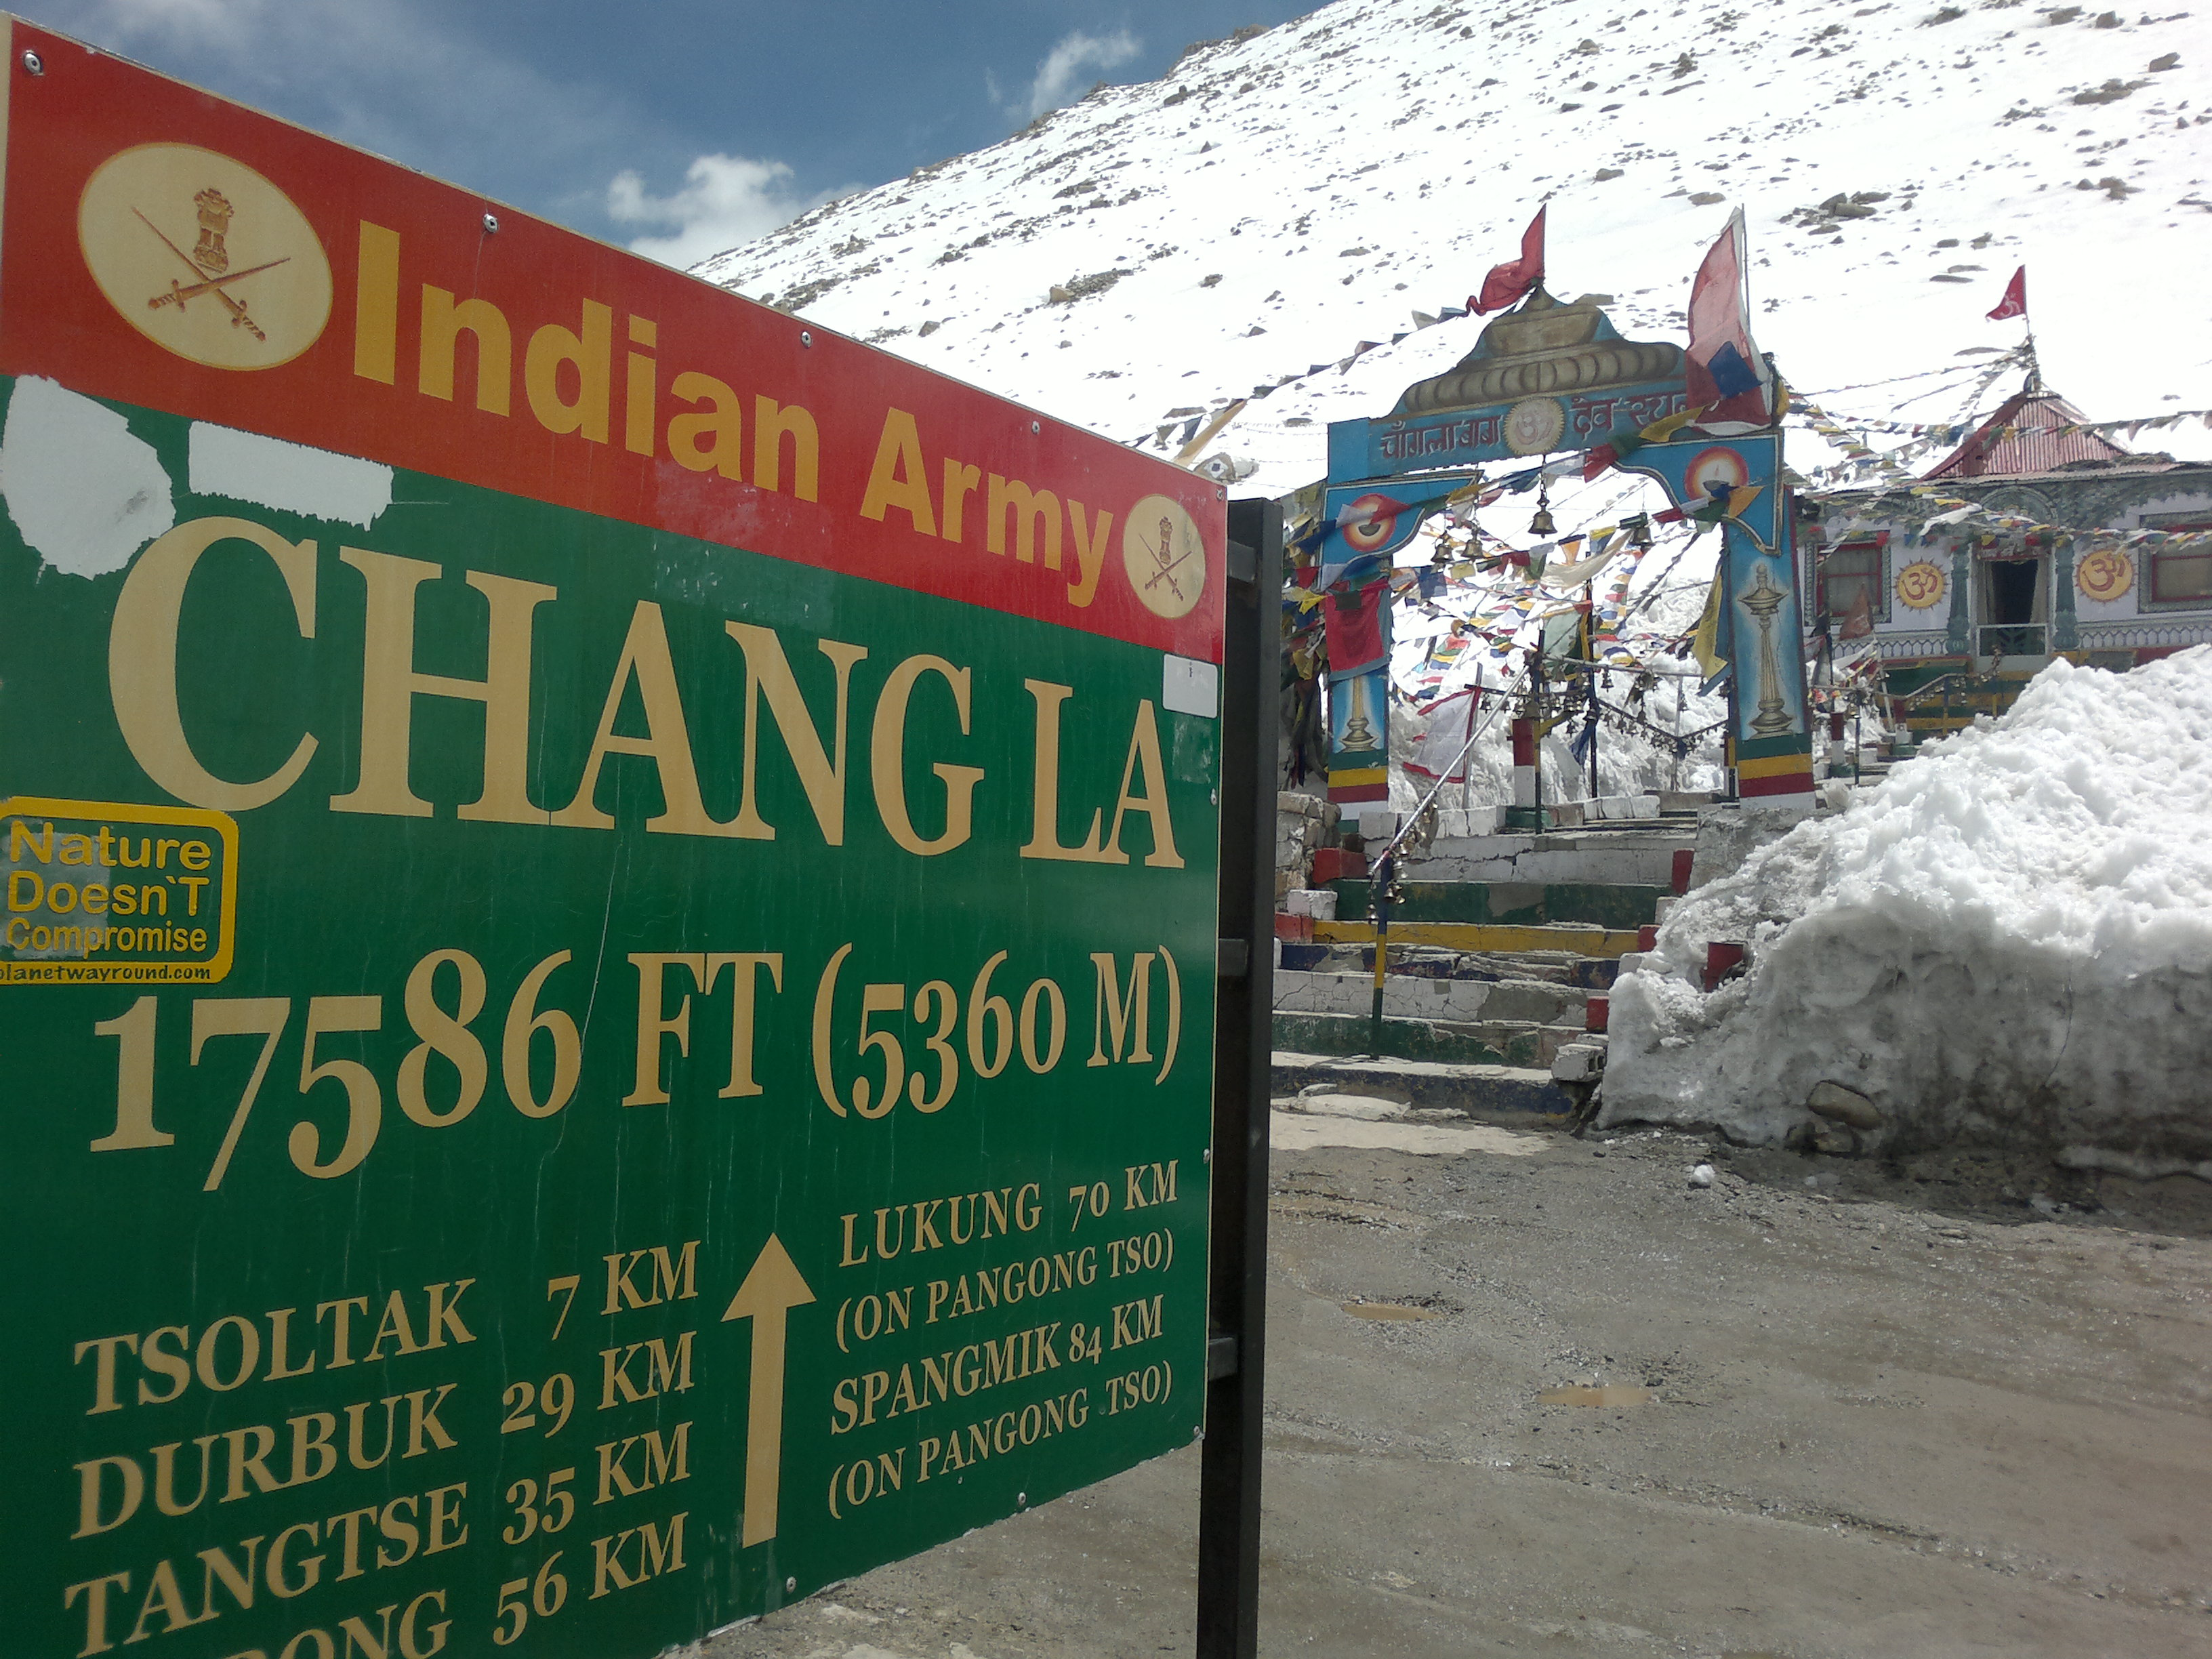 Changa La, Roadtrip to Leh-Ladakh with Heaven Riders India